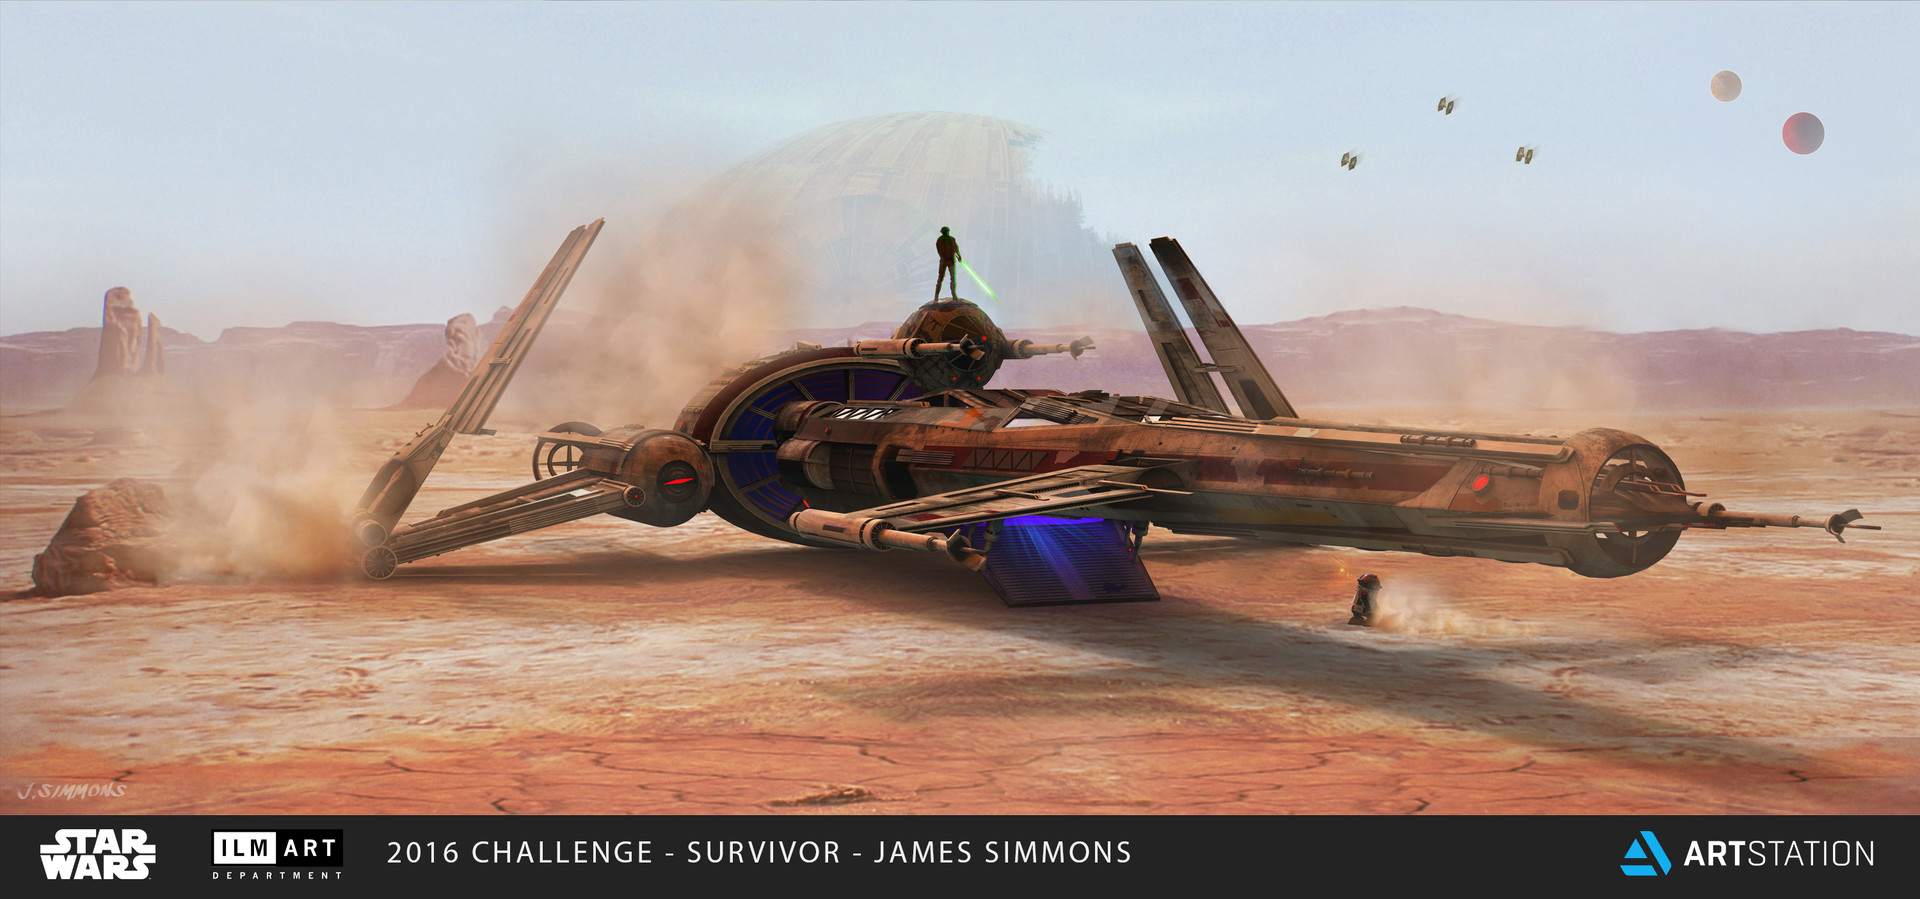 james-simmons-jamessimmons-ilm-survivor-